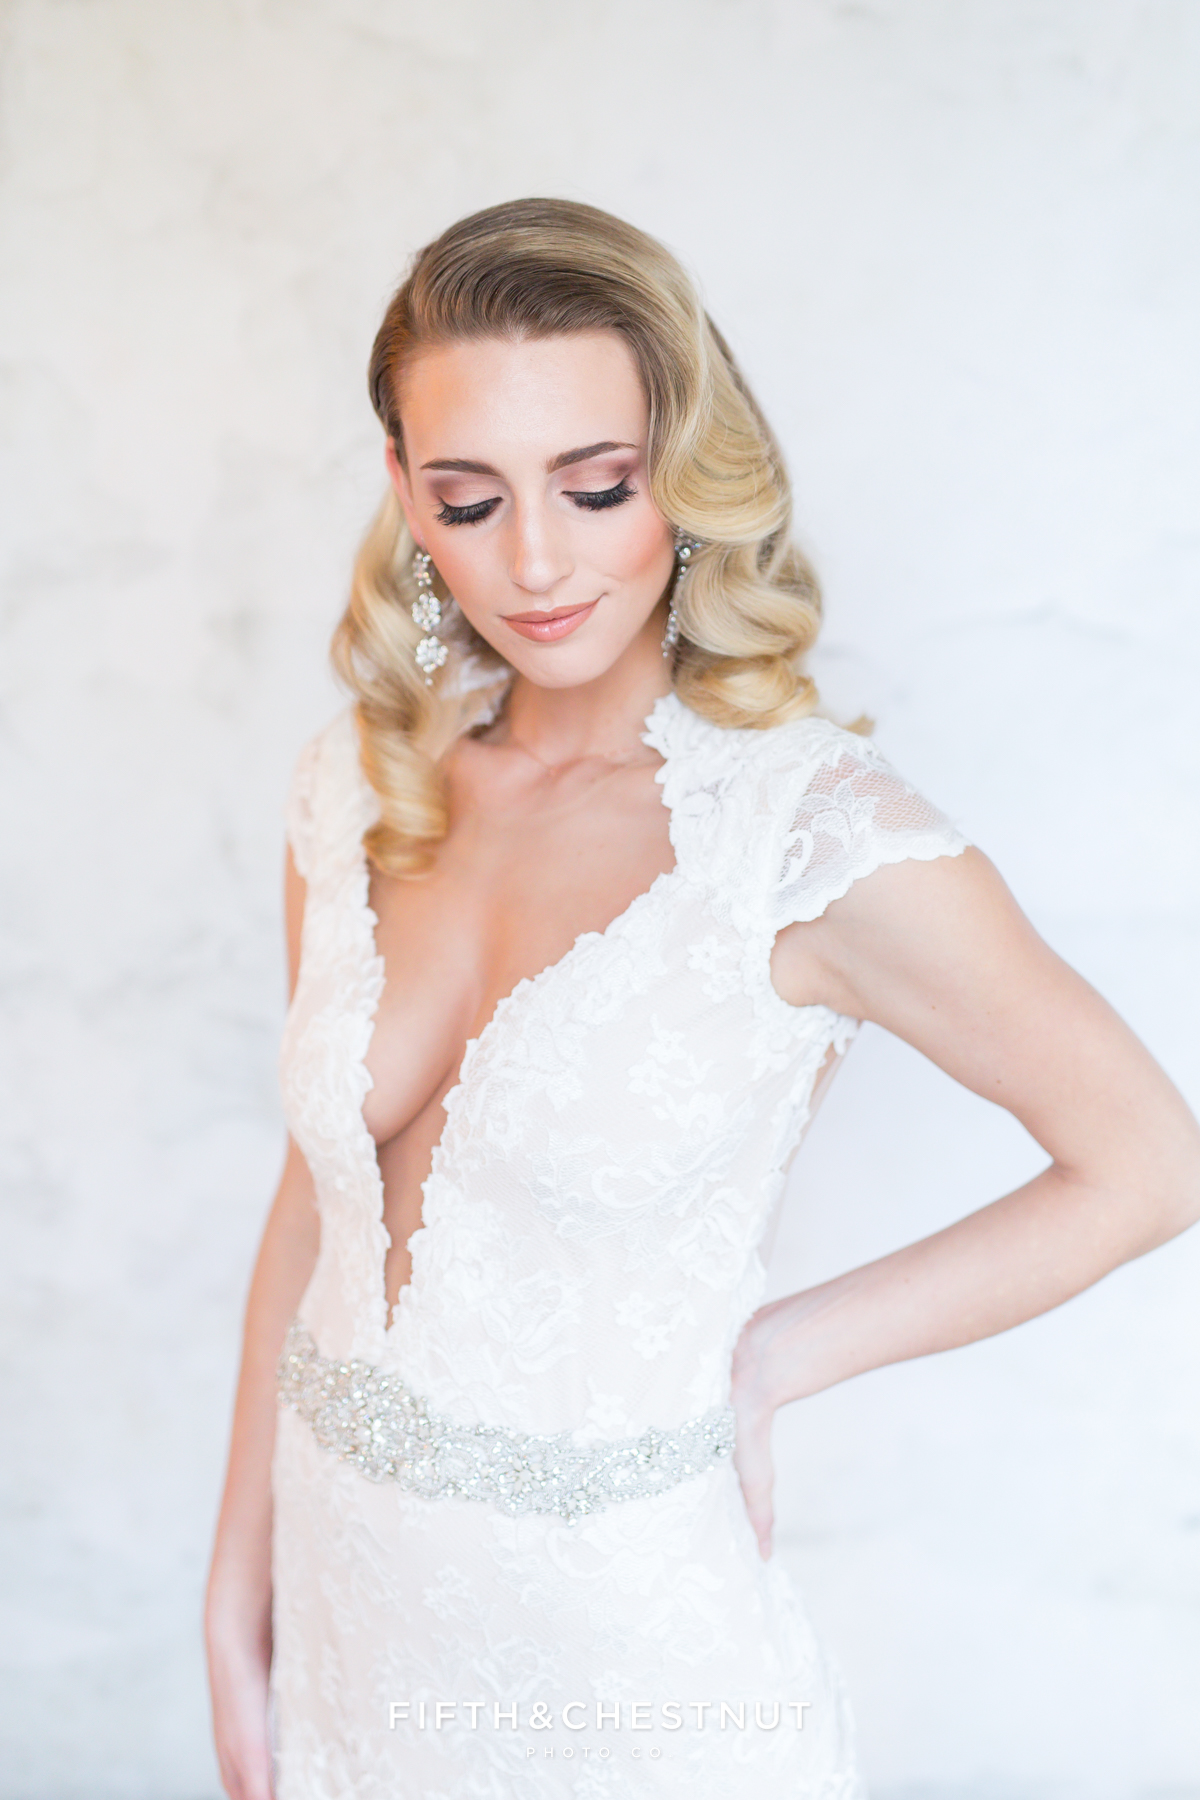 2017 La Di Da Bridal Workshop photography by Tahoe Wedding Photographer Fifth and Chestnut with model in wedding dress provided by Swoon Bridal